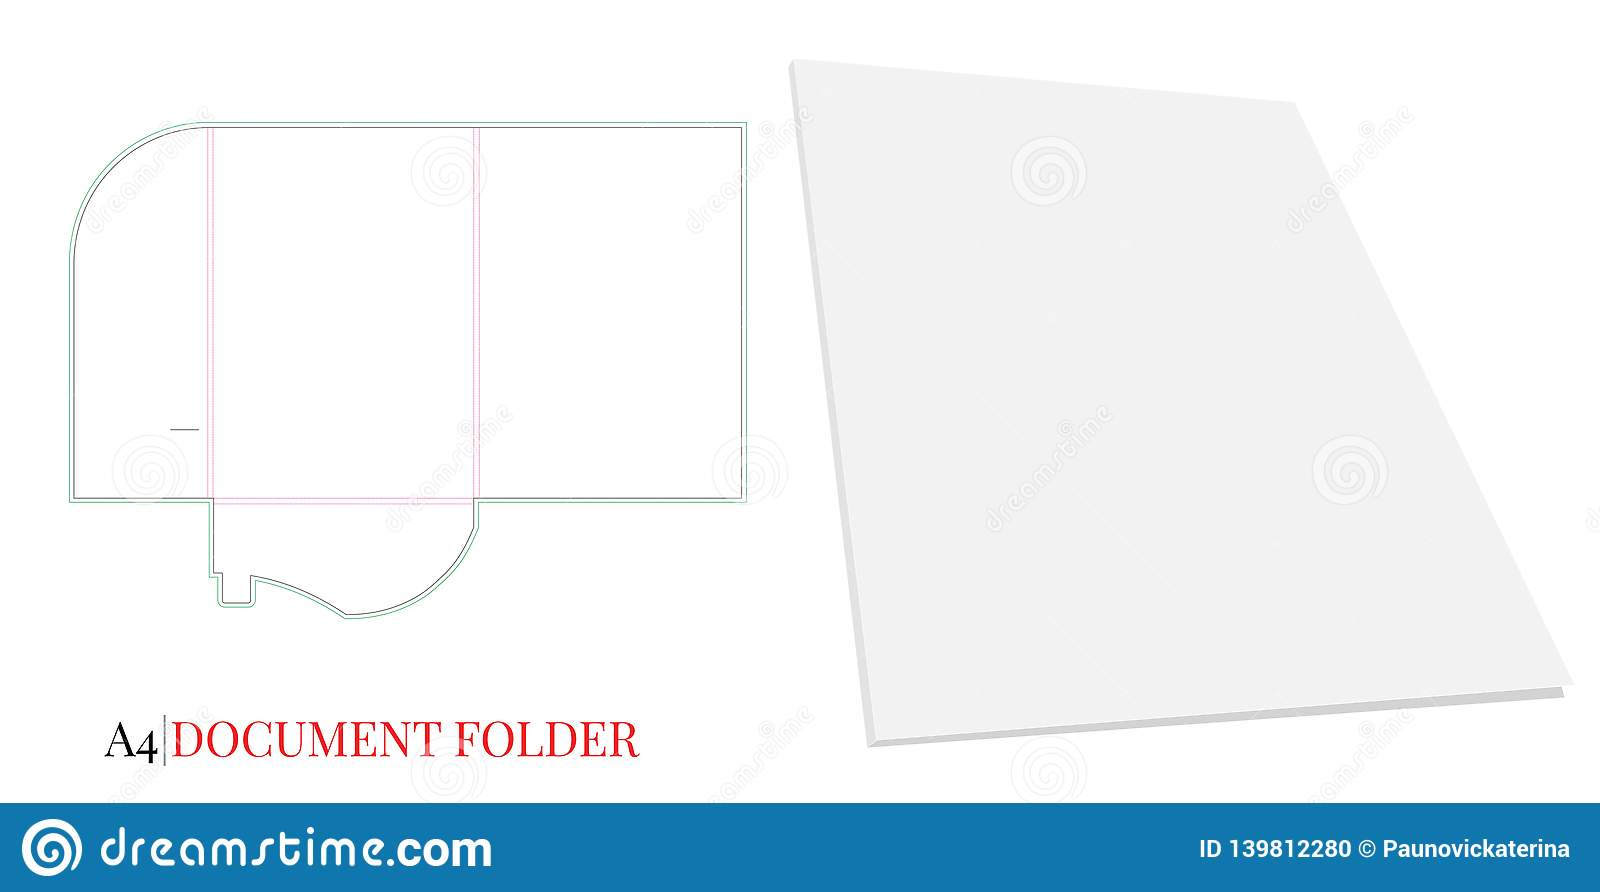 Document Folder Template, A4  Vector With Die Cut / Laser Cut Layers